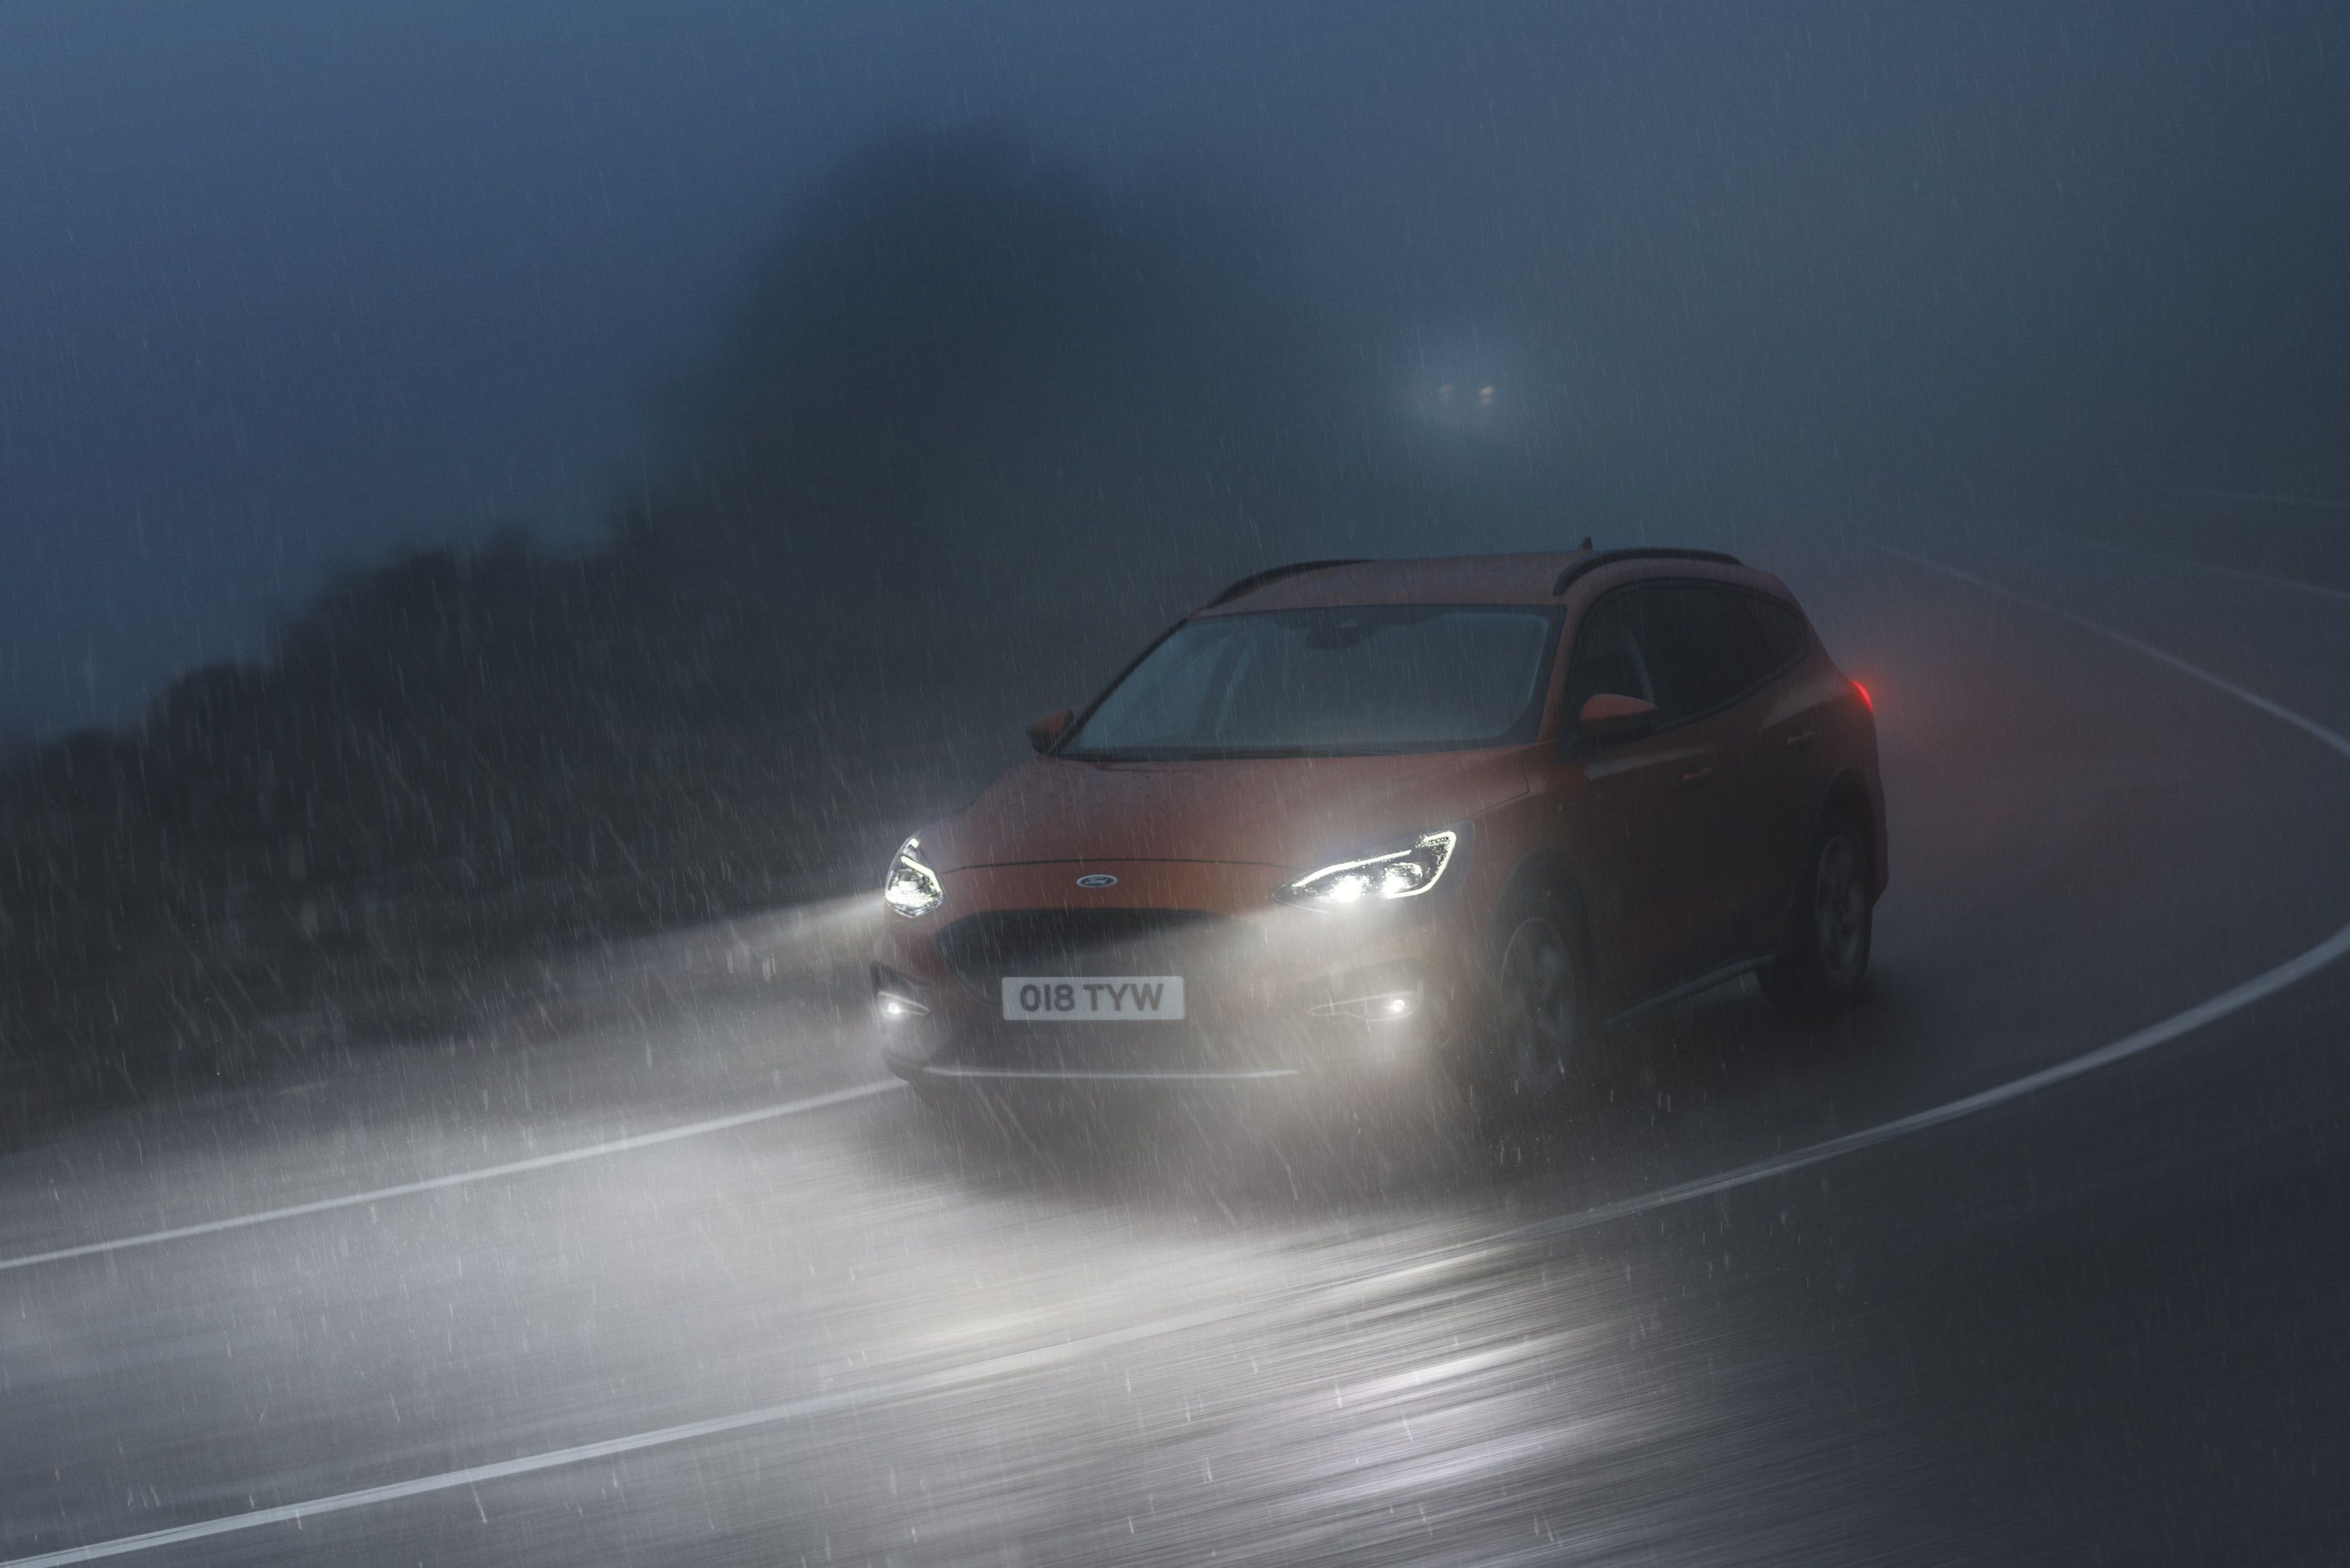 ford focus active driving in dark and rain